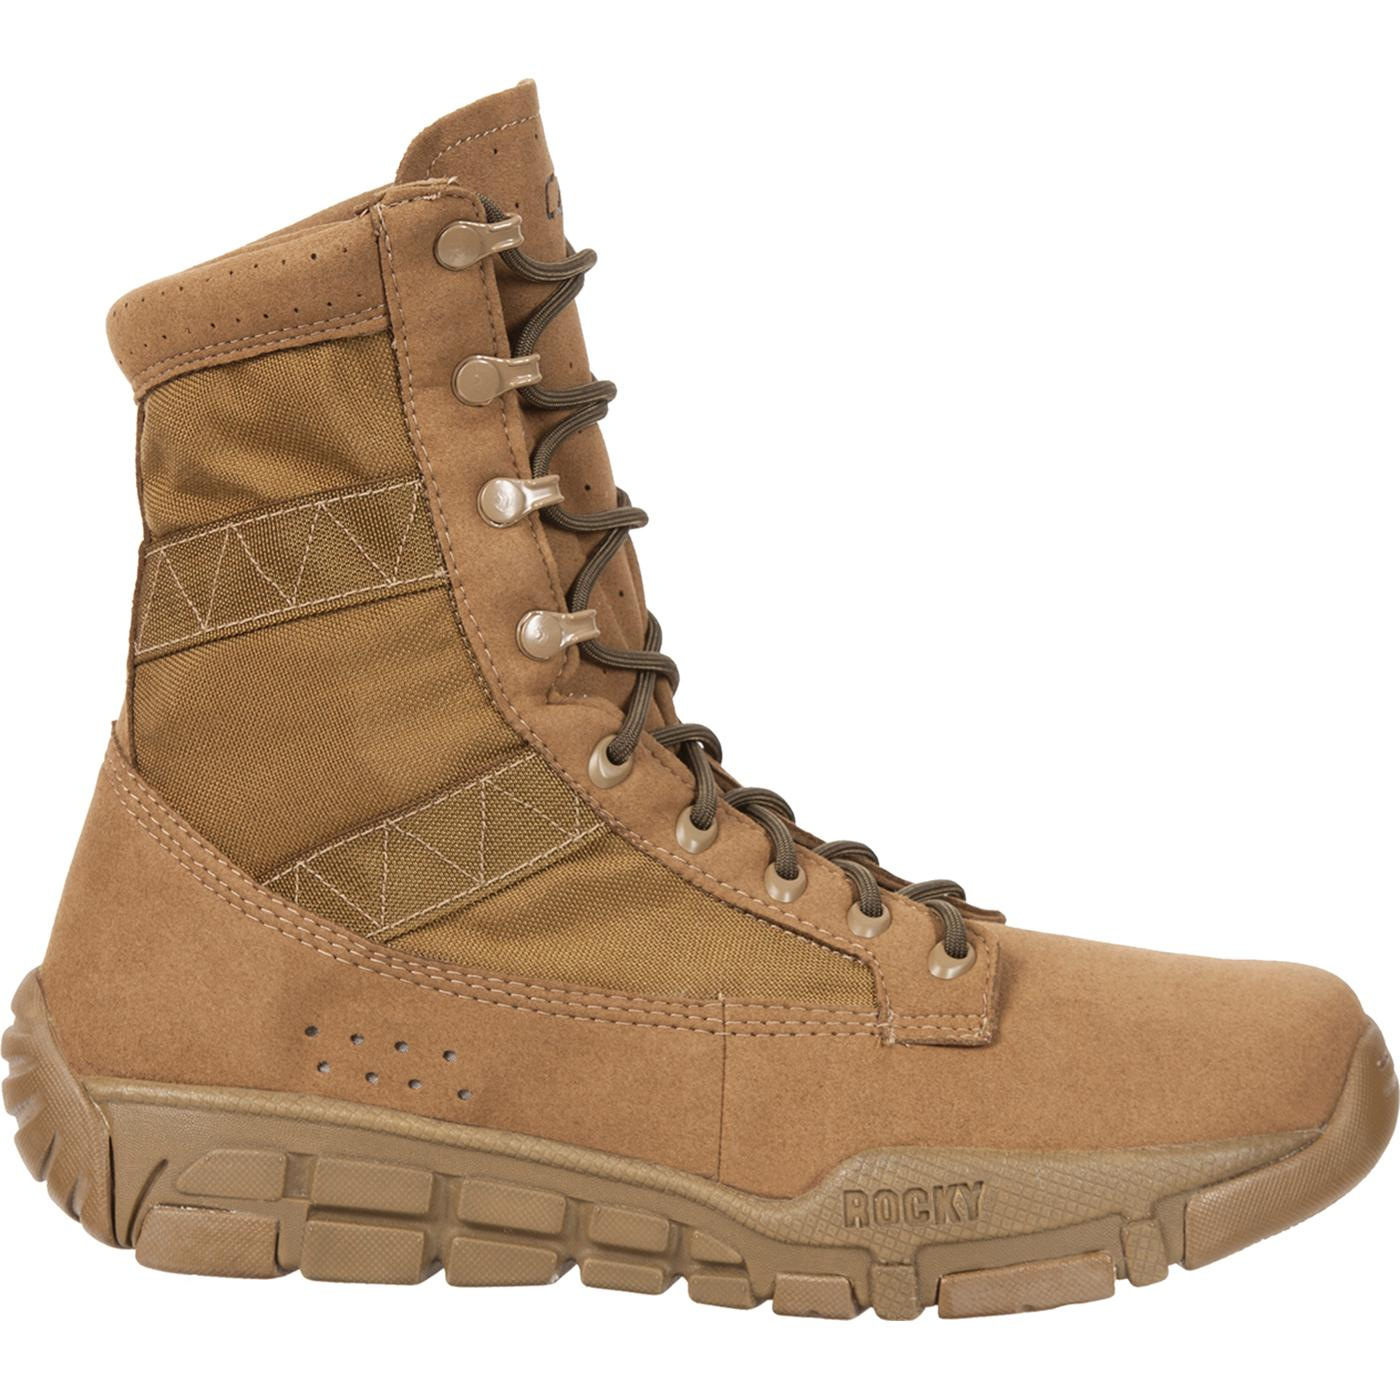 Rocky C4T Trainer Military Duty Boots, style #FQ0001074